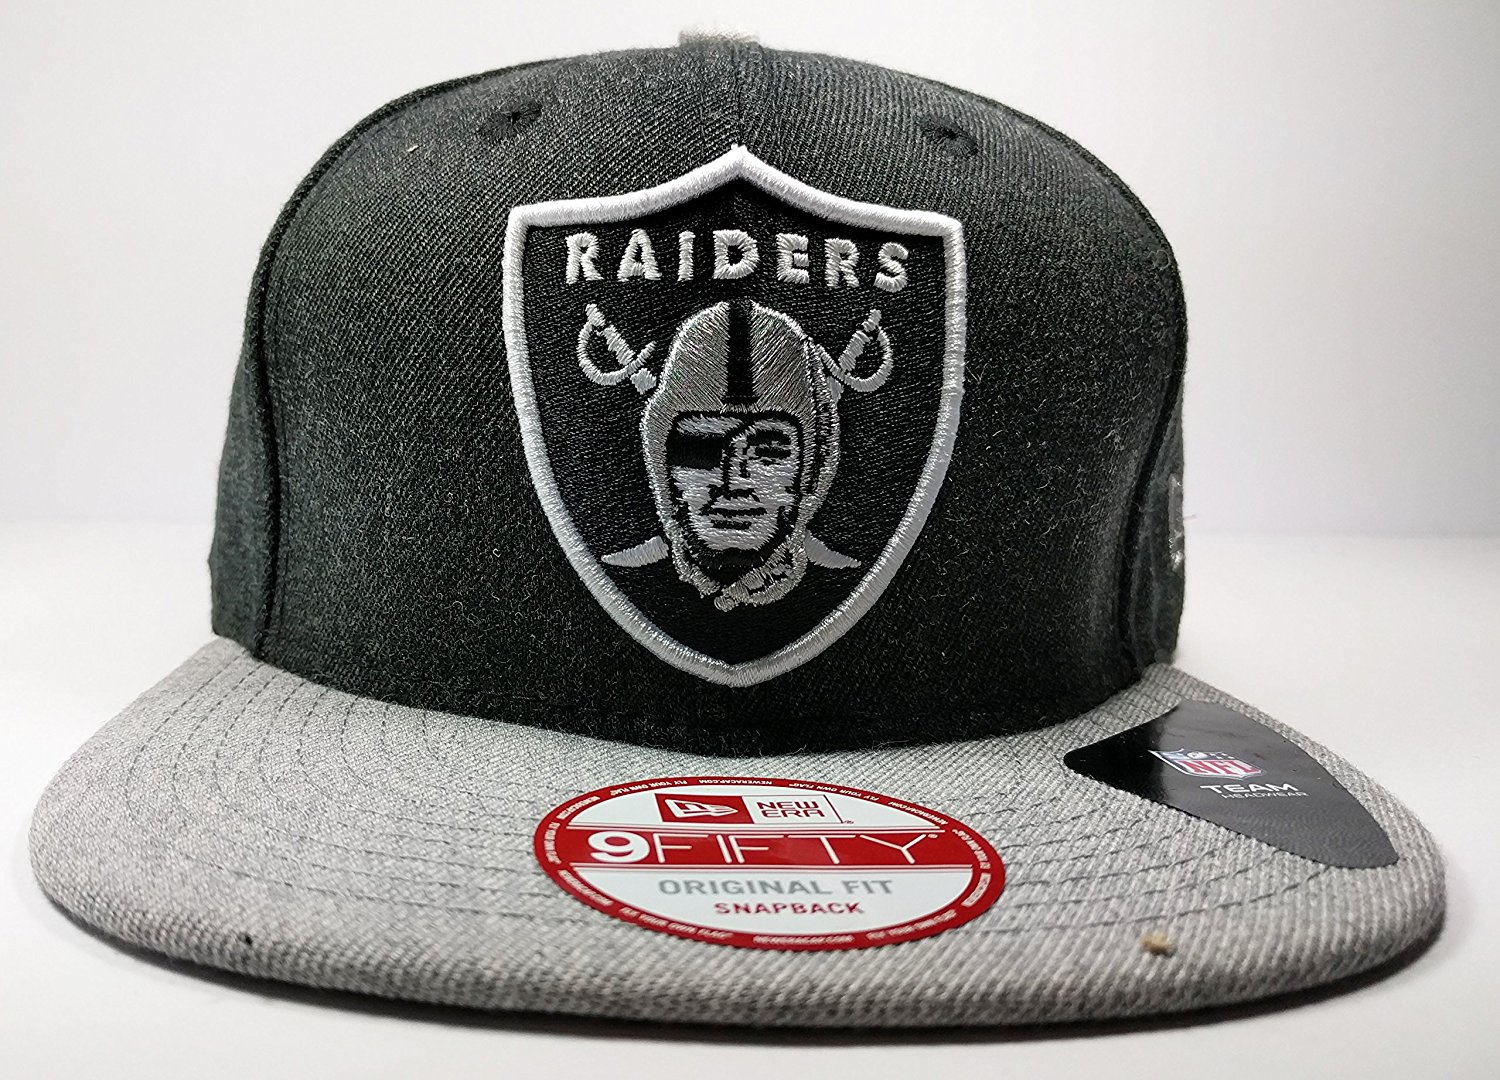 new product 5a0ee 33fee Get Quotations · Oakland Raiders New Era Speed Up Snapback Cap Hat Grey  Black